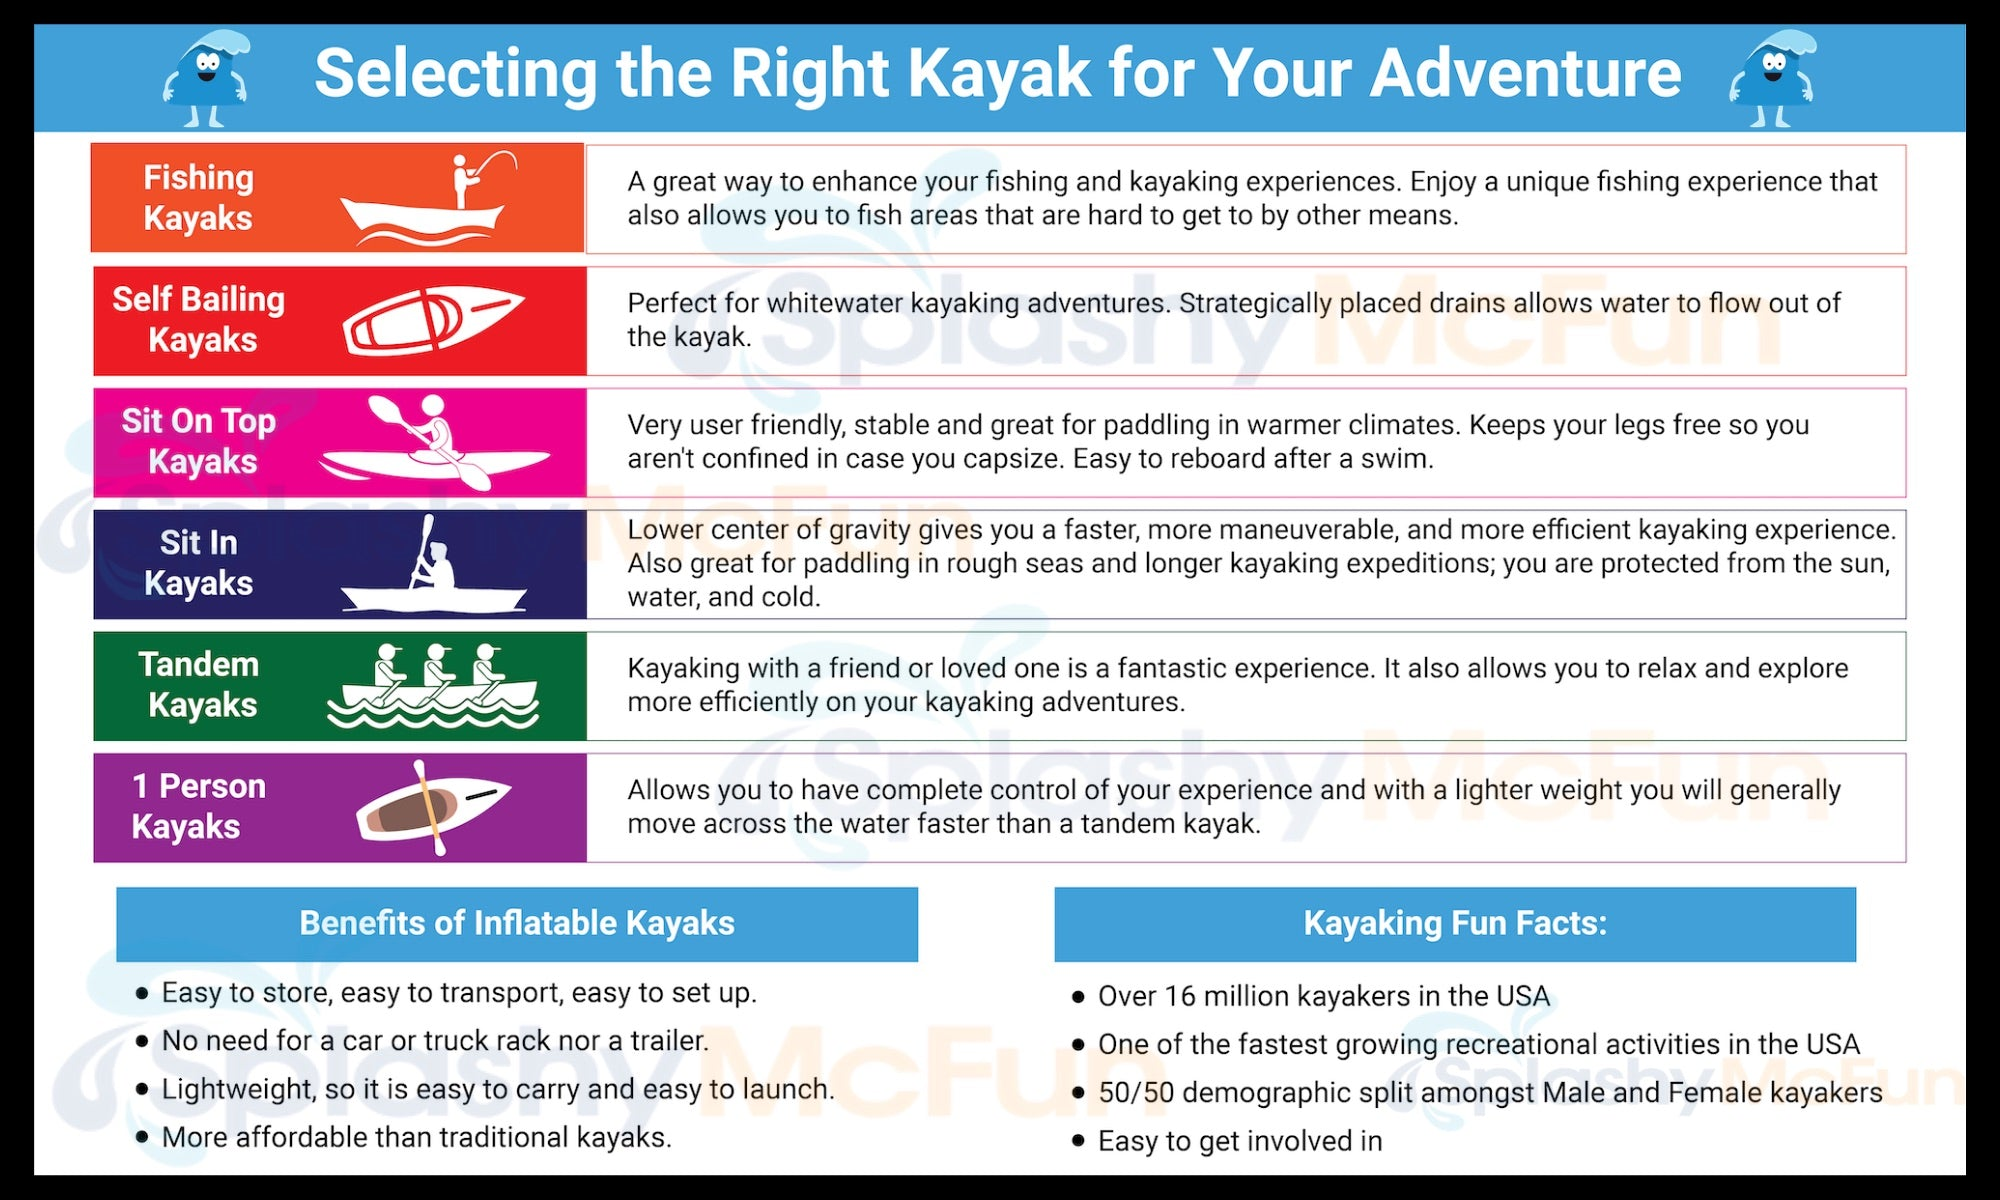 Types of inflatable kayaks that you have to choose from:  Inflatable Fishing Kayak, Whitewater kayak, Sit on top kayak, sit in kayak, tandem kayak, and 1 person kayak.